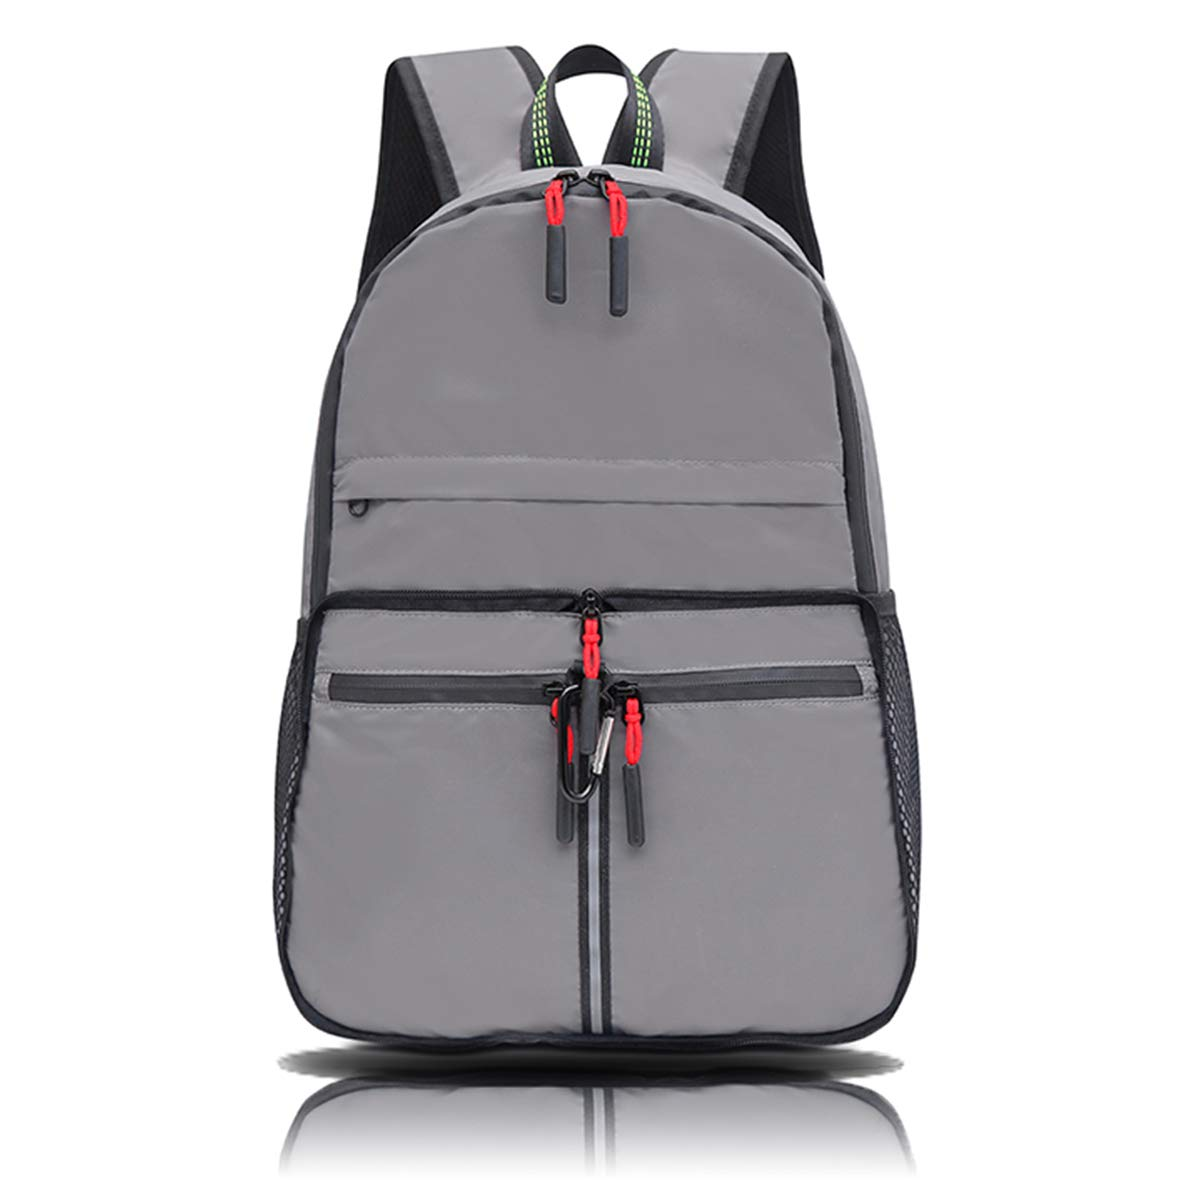 Travel Lightweight Backpack Hiking Daypacks – Ultralight Water Resistant Packable Backpack Durable Foldable Travelers Day Bag